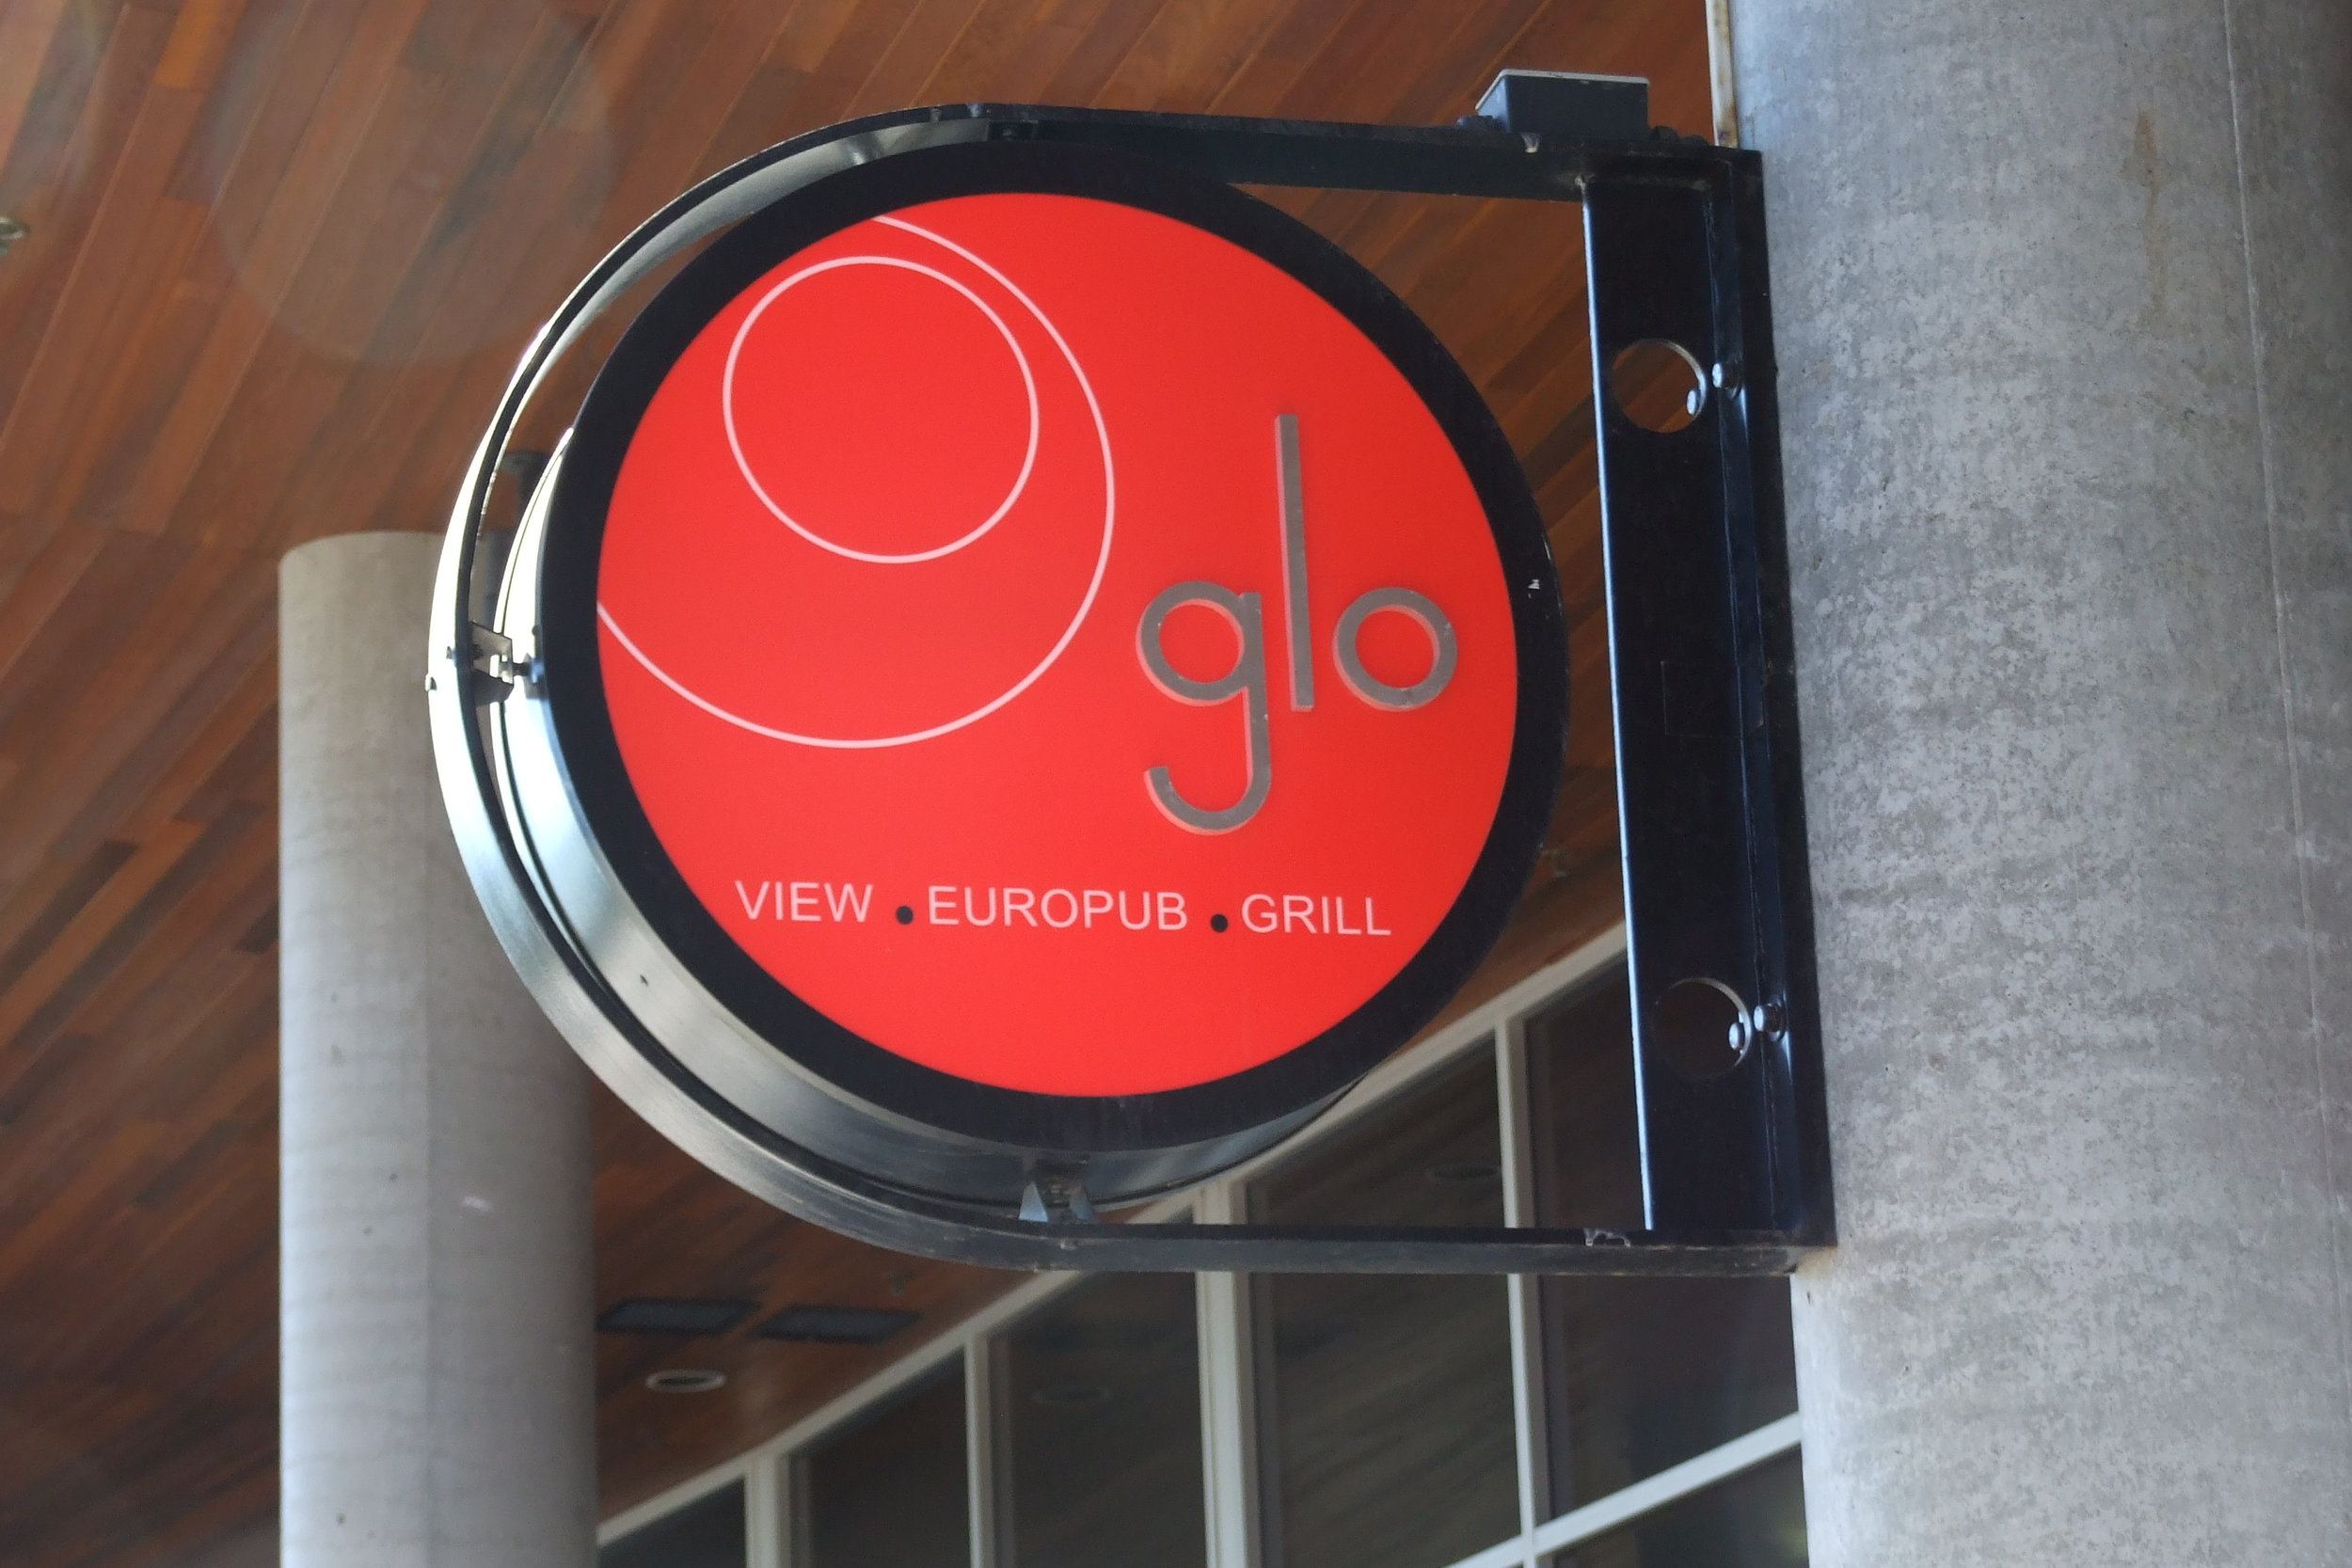 glo_exterior sign.JPG